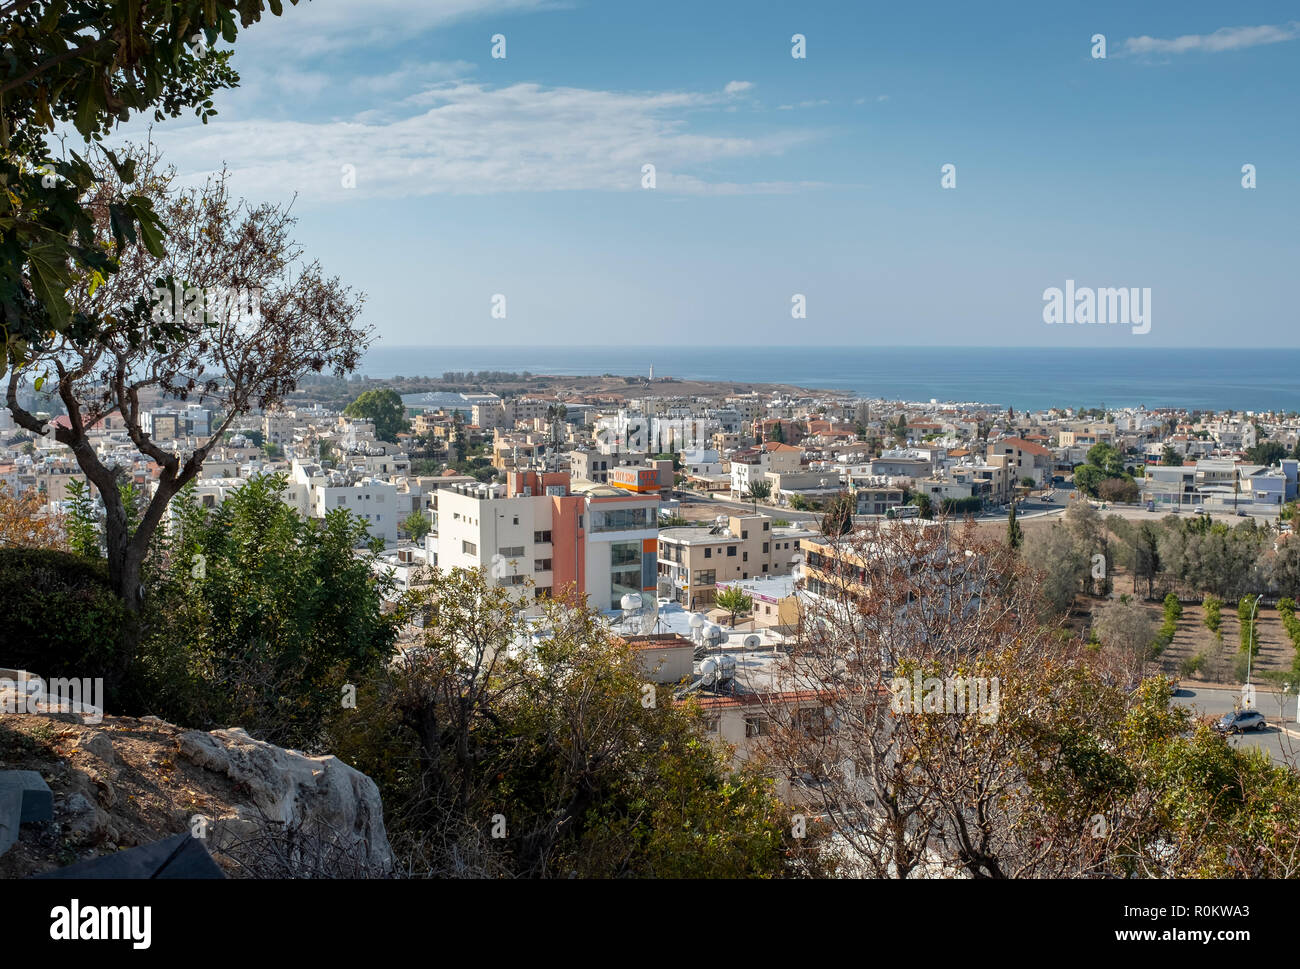 View over Kato Paphos from Paphos old town with the Mediterranean Sea in the distance - Stock Image